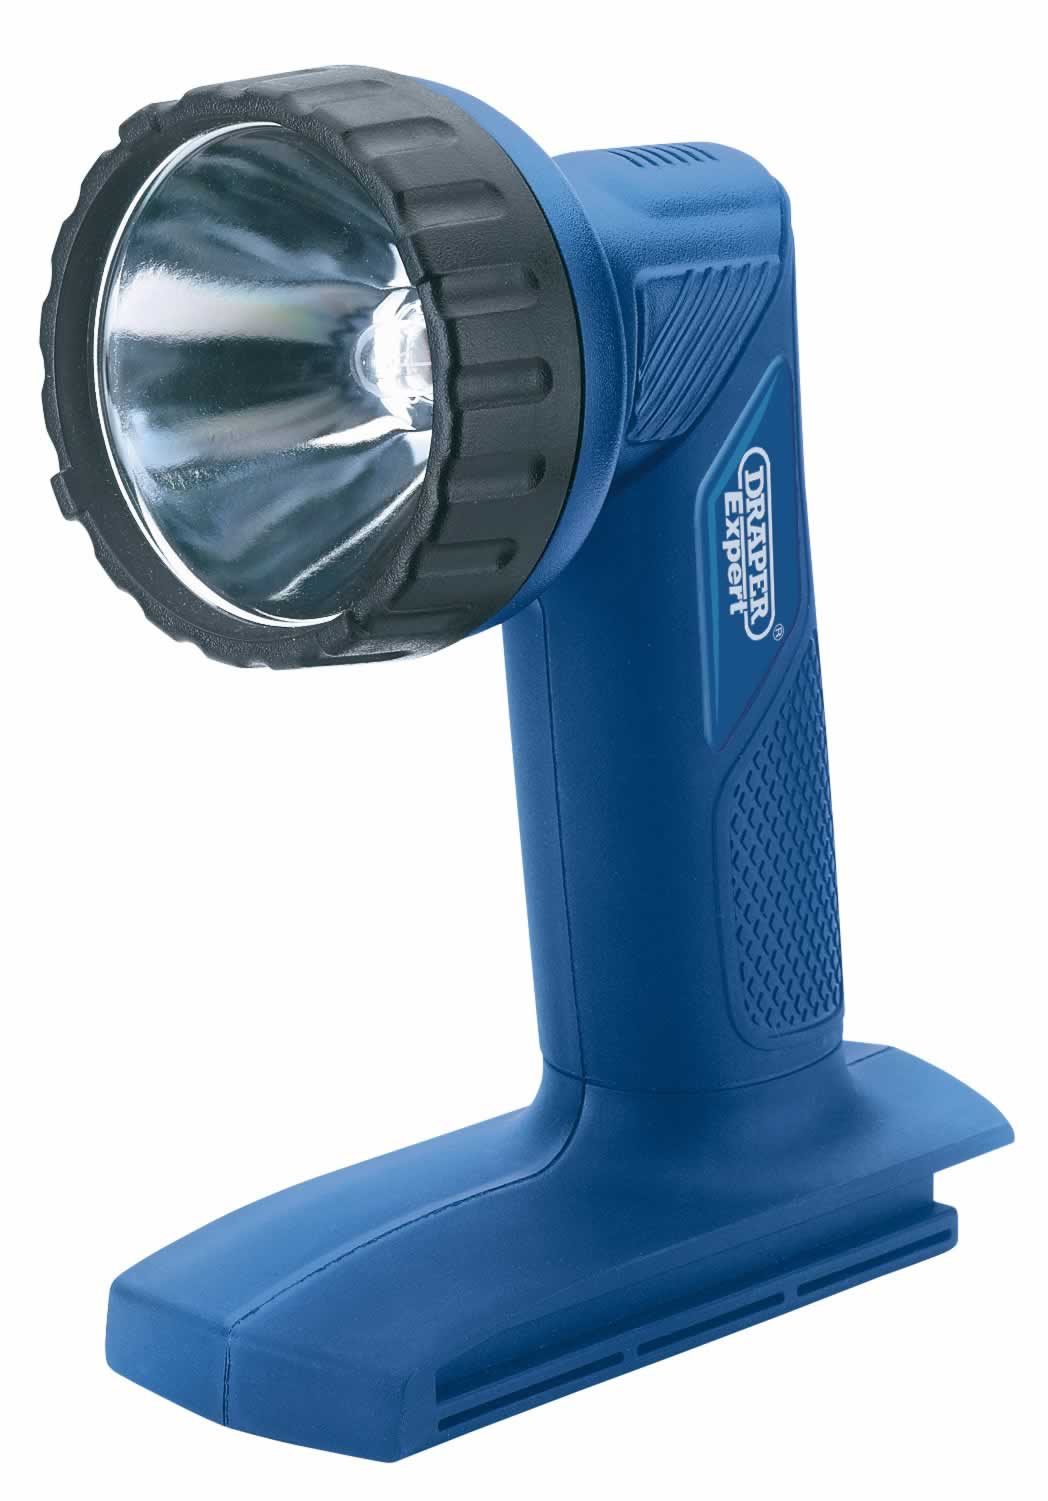 EXPERT 18V TORCH WITHOUT BATTERY  (AHA)